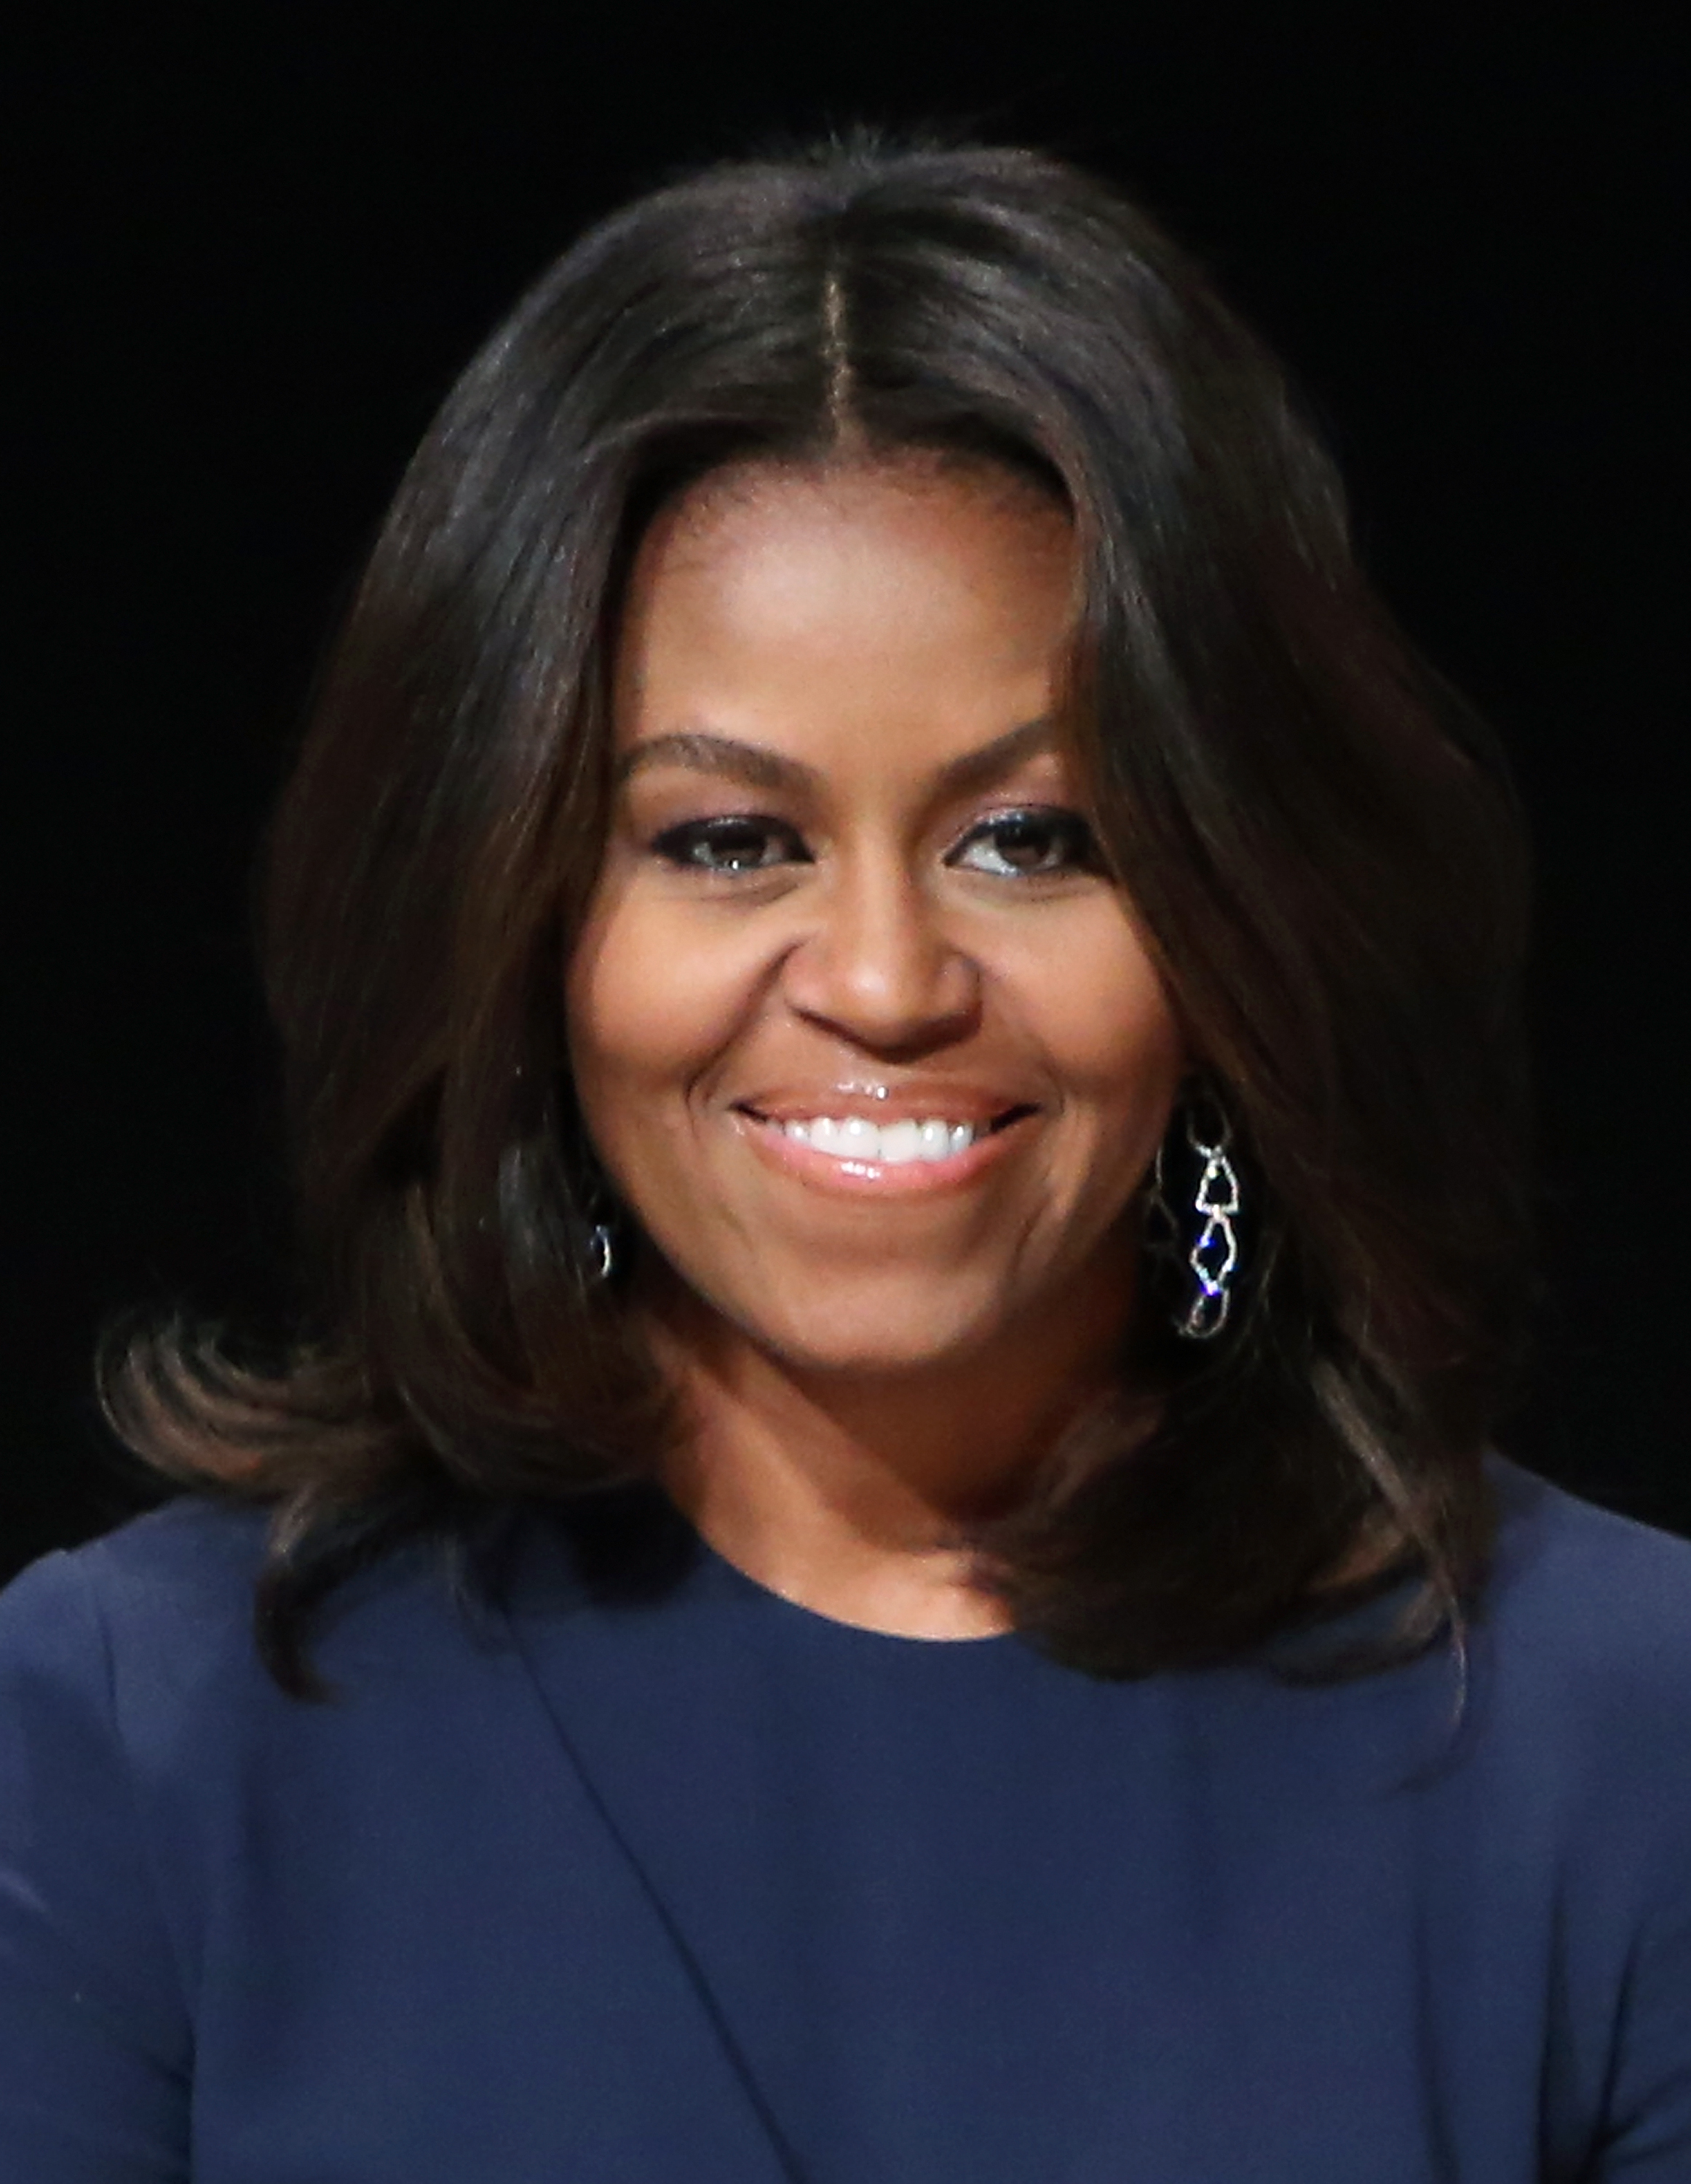 First Lady of the United States Michelle Obama at the  Let Girls Learn  Global Conversation in New York City on Sept. 29, 2015.